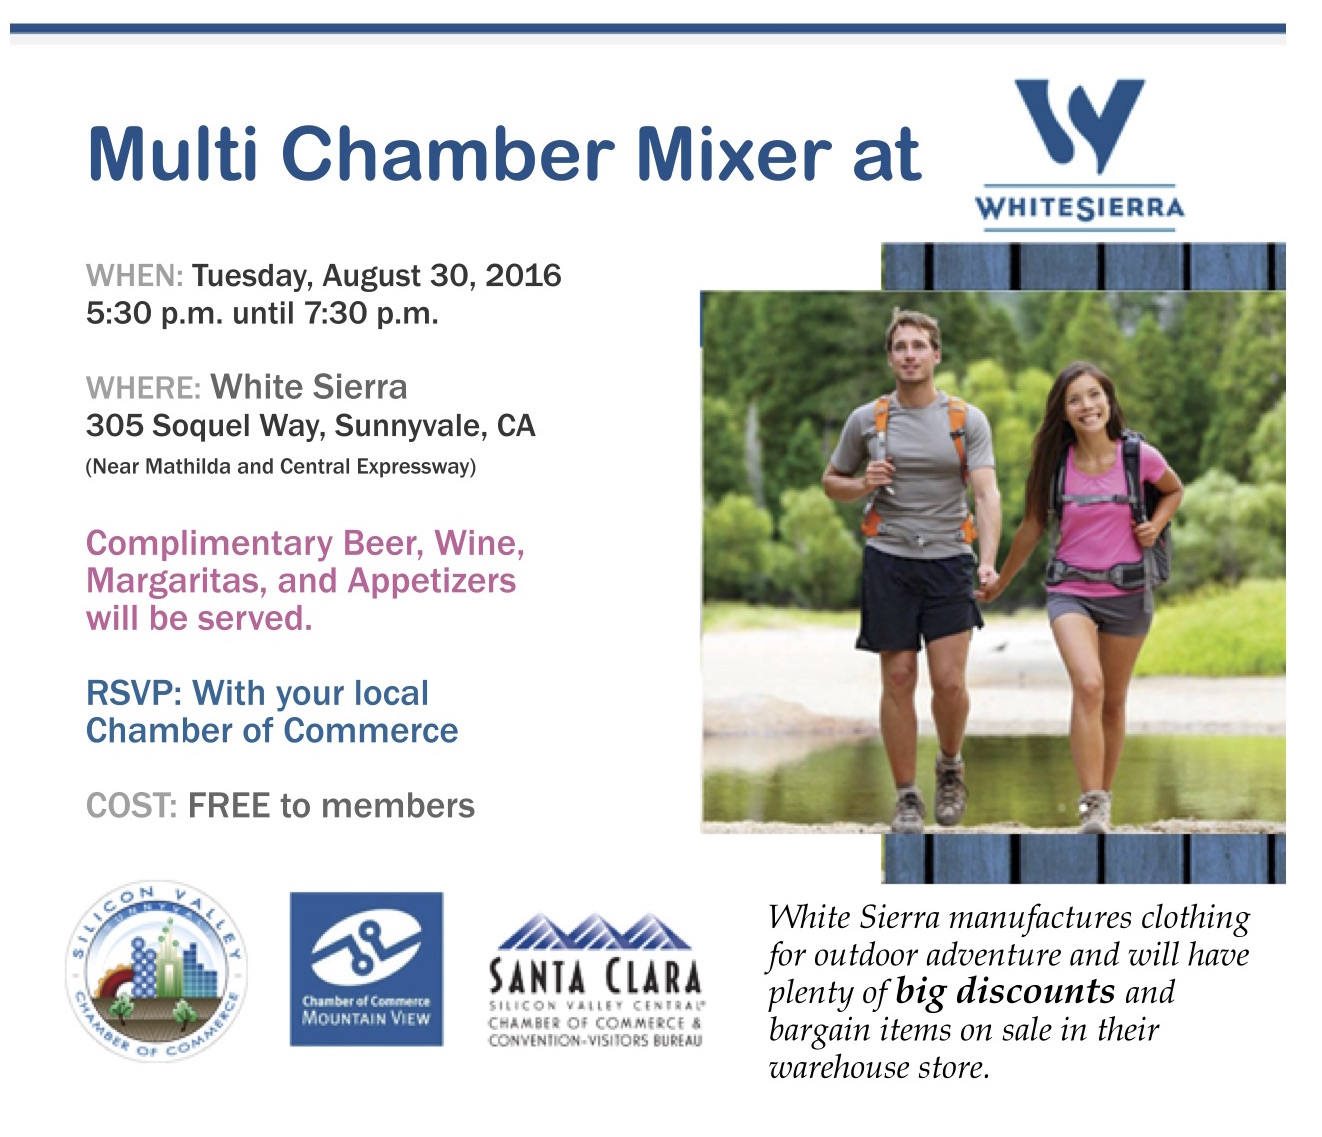 Multi Chamber Mixer at White Sierra